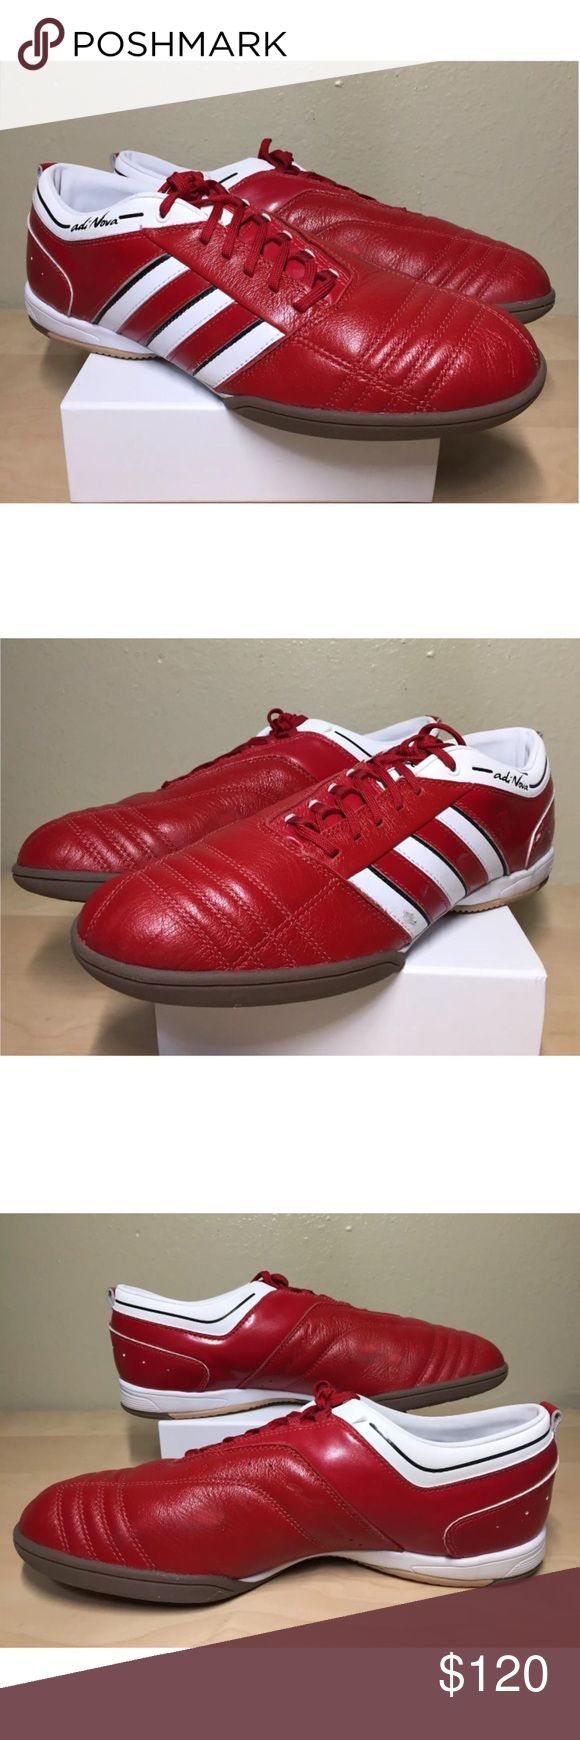 Adidas Adinova Red Indoor Soccer Sz 10 05/09 2009 2009 Adidas Adinova Red Indoor Soccer Shoes Size 10 05/09  These shoes are pre owned , but only wear used one time, they are in great condition and still smells like a new shoe, the leather is still hard and in good shape, only some marks on the shoe noticeable in the pictures.   The box is not the original box The shoe is a size 10 but will fit a 10.5  SEE PICTURES FOR MORE DETAILS adidas Shoes Athletic Shoes